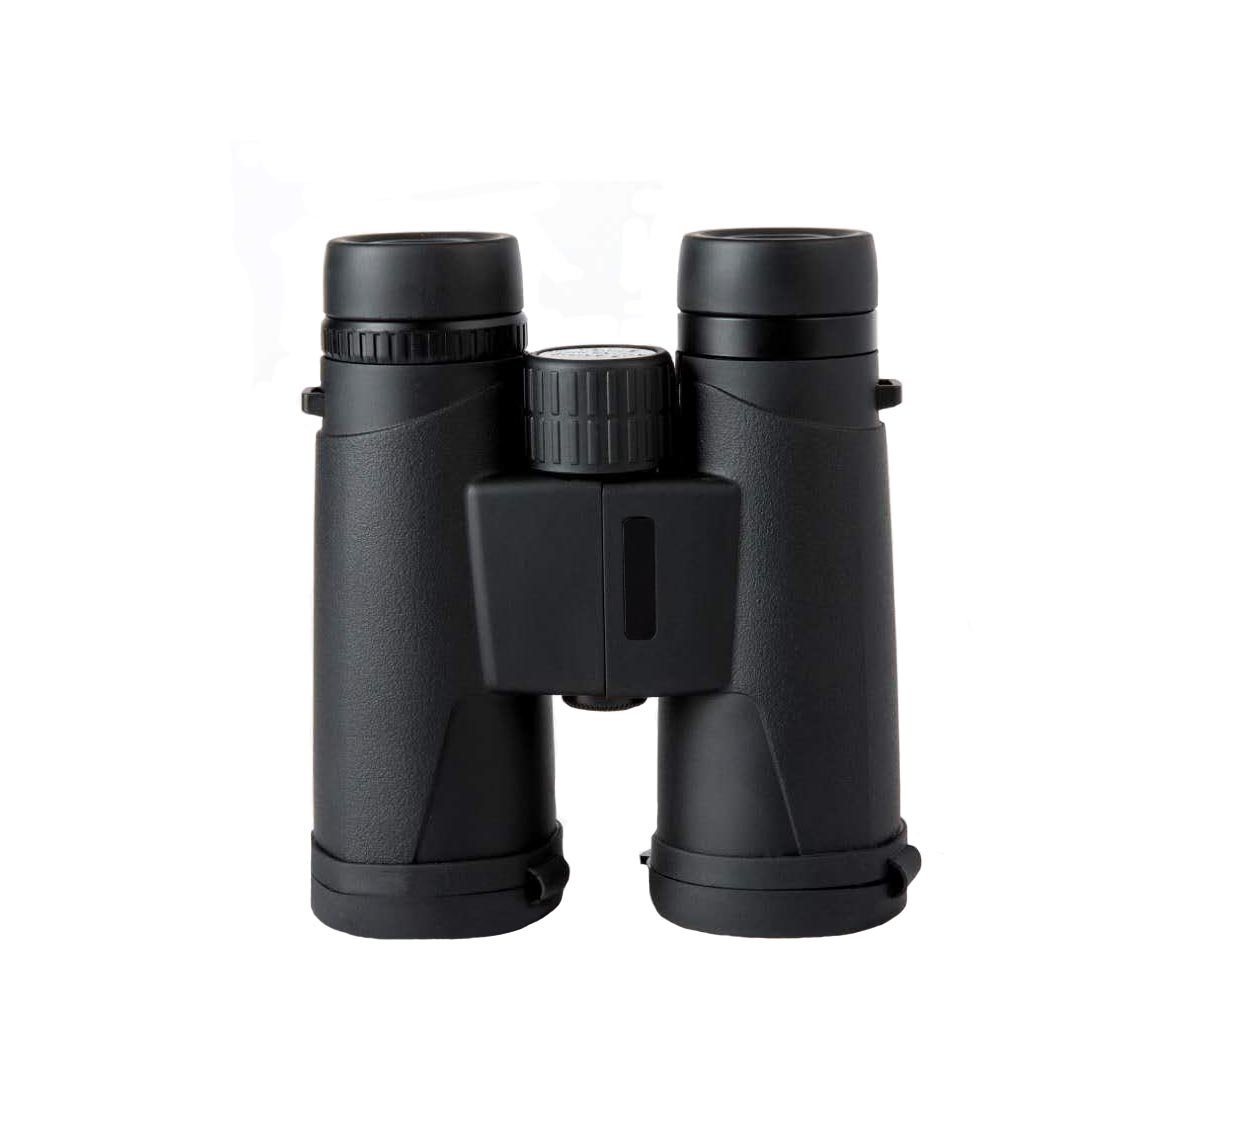 SHENFAN 10X42 Lightweight Binoculars,Bright and Clear Views for Hours of Bird Watching, Hunting ,Travelling, Outdoor Sports,Hiking Games ,WaterProof